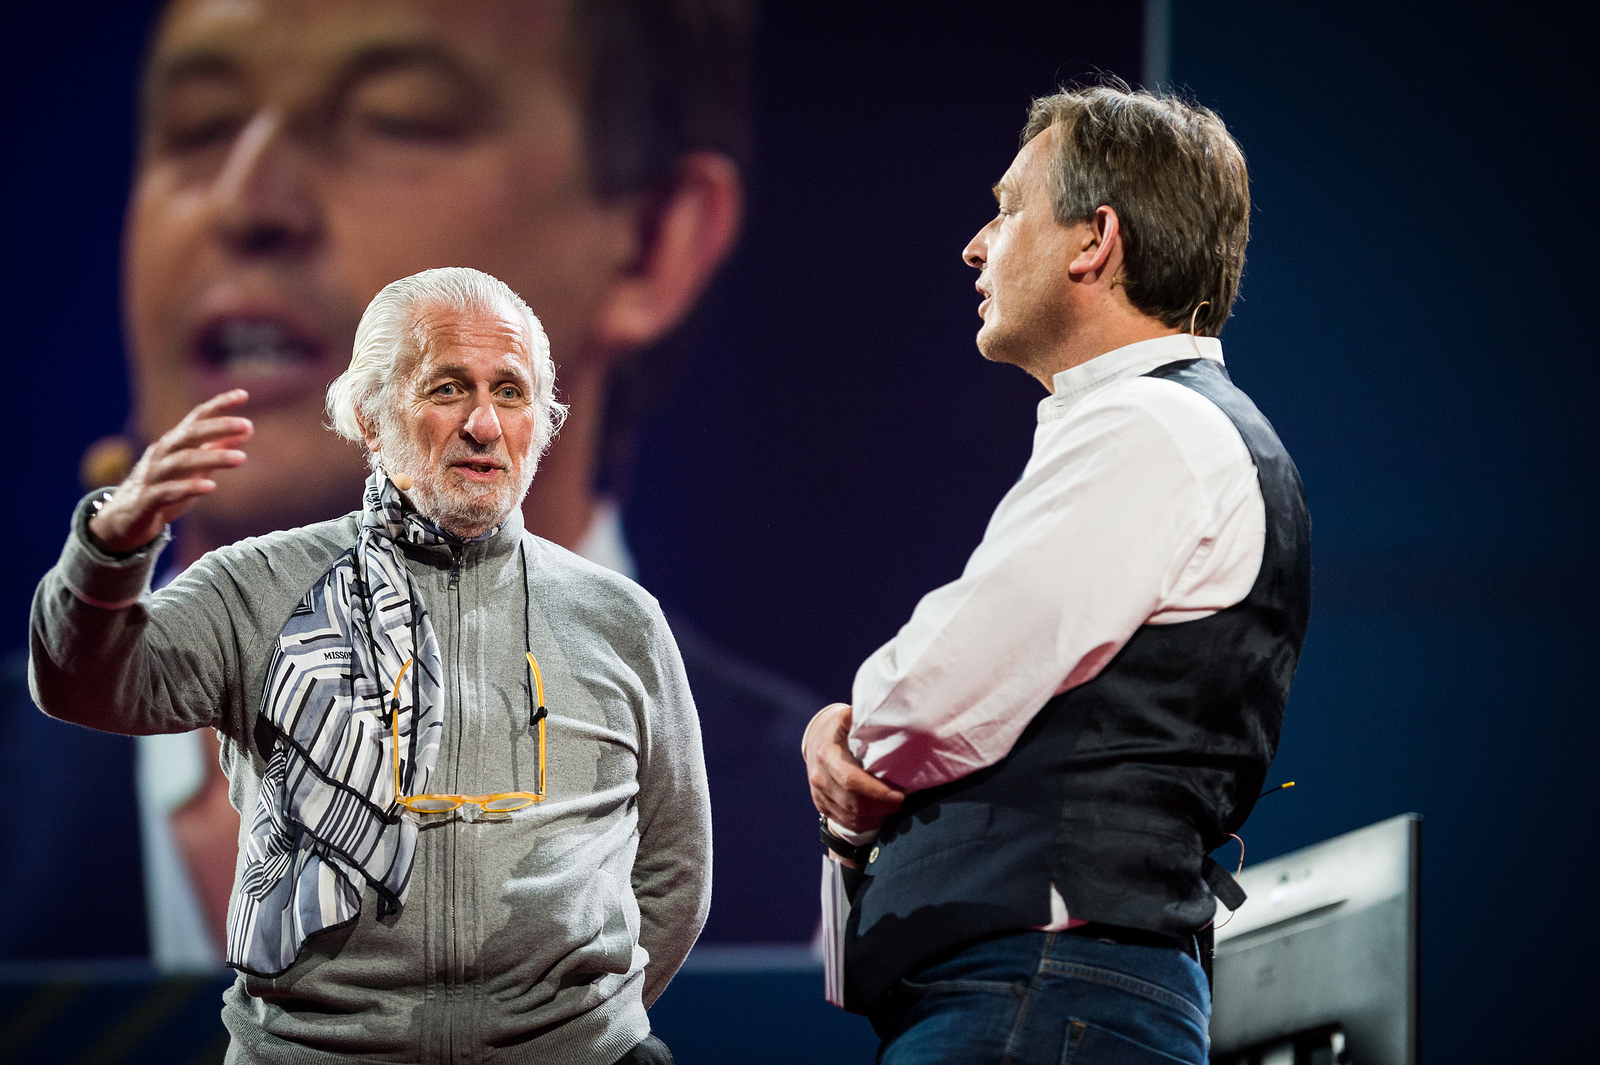 Chris Anderson presents a scarf to TED founder, Richard Saul Wurman. Photo: James Duncan Davidson